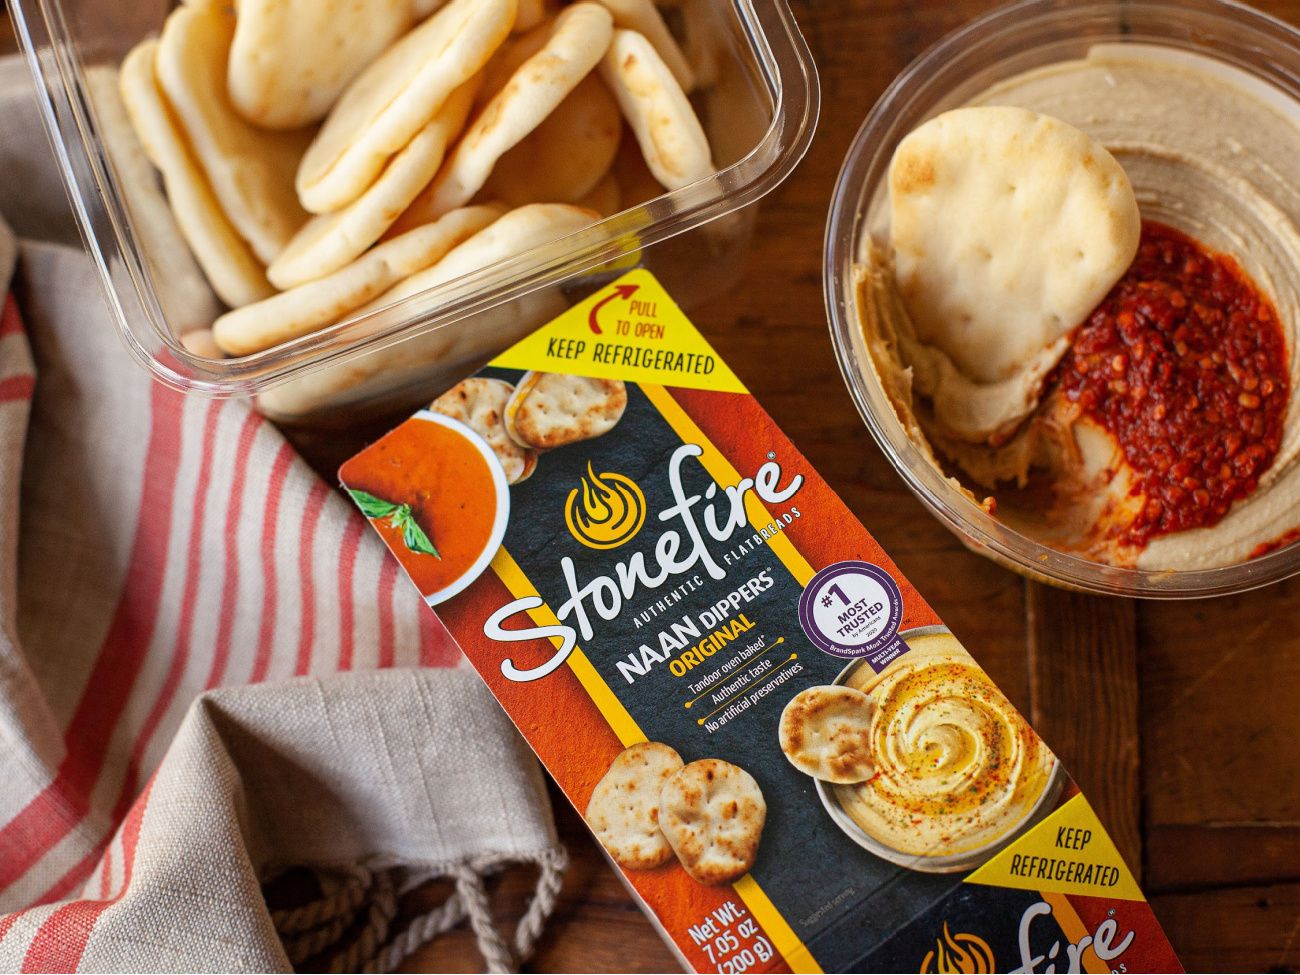 Stonefire Naan Dippers Just $1.50 At Publix (Plus Cheap Flatbreads!) on I Heart Publix